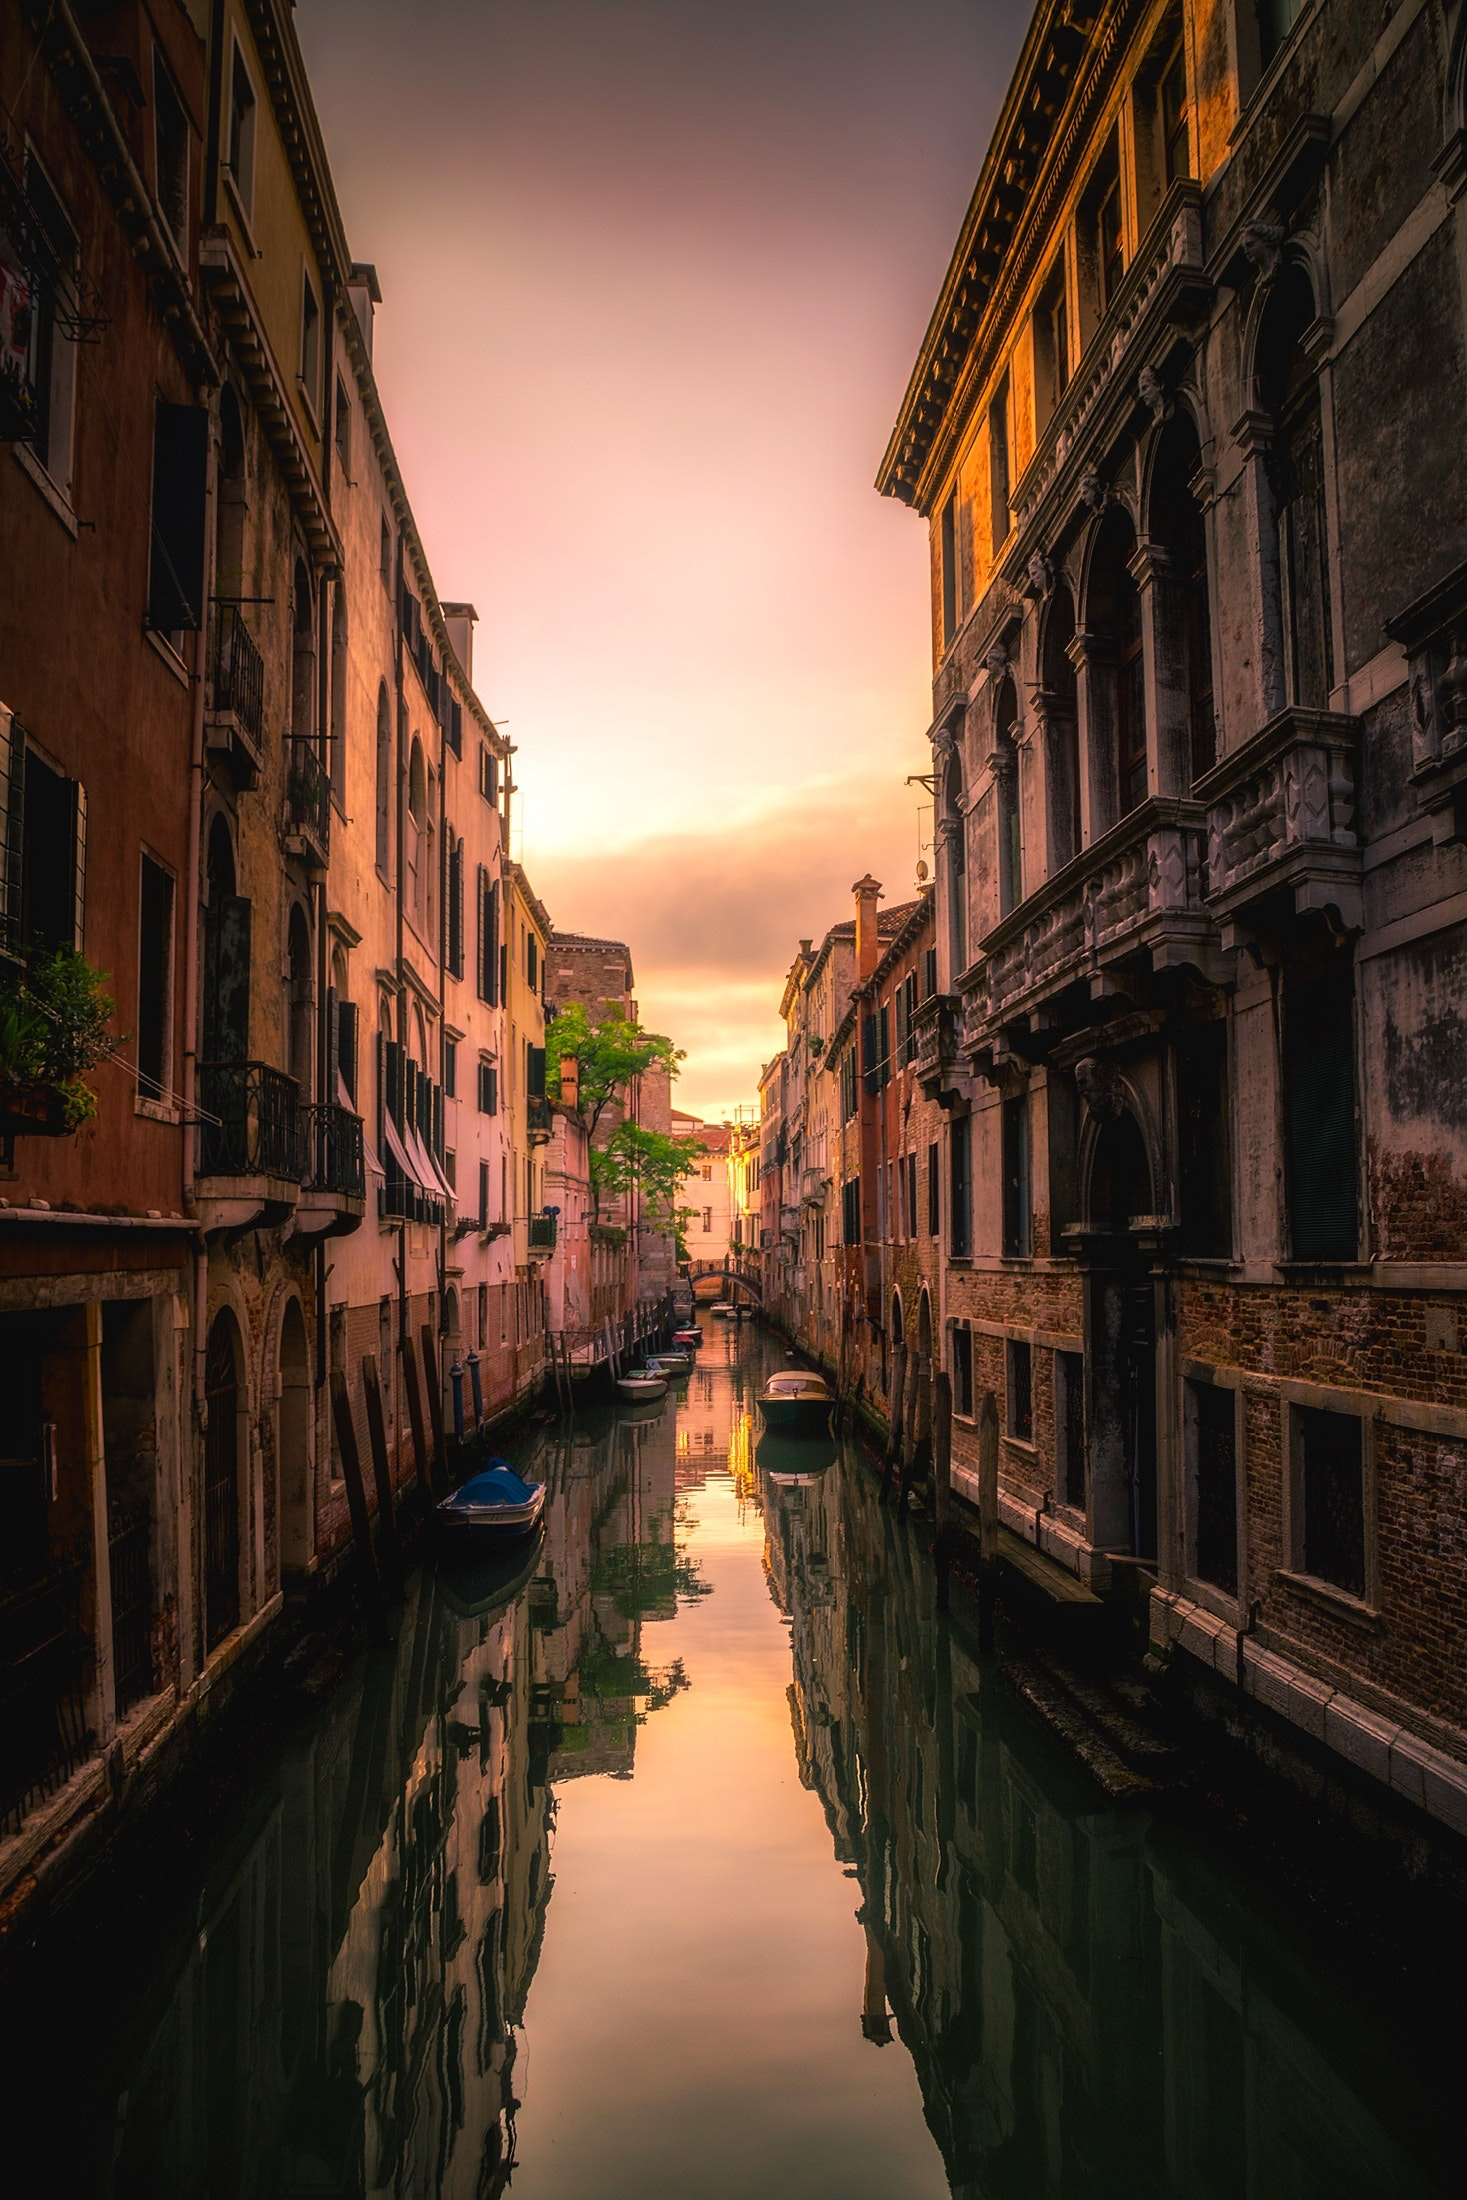 View of Canal in City, Architecture, Reflections, Venice, Vacation, HQ Photo